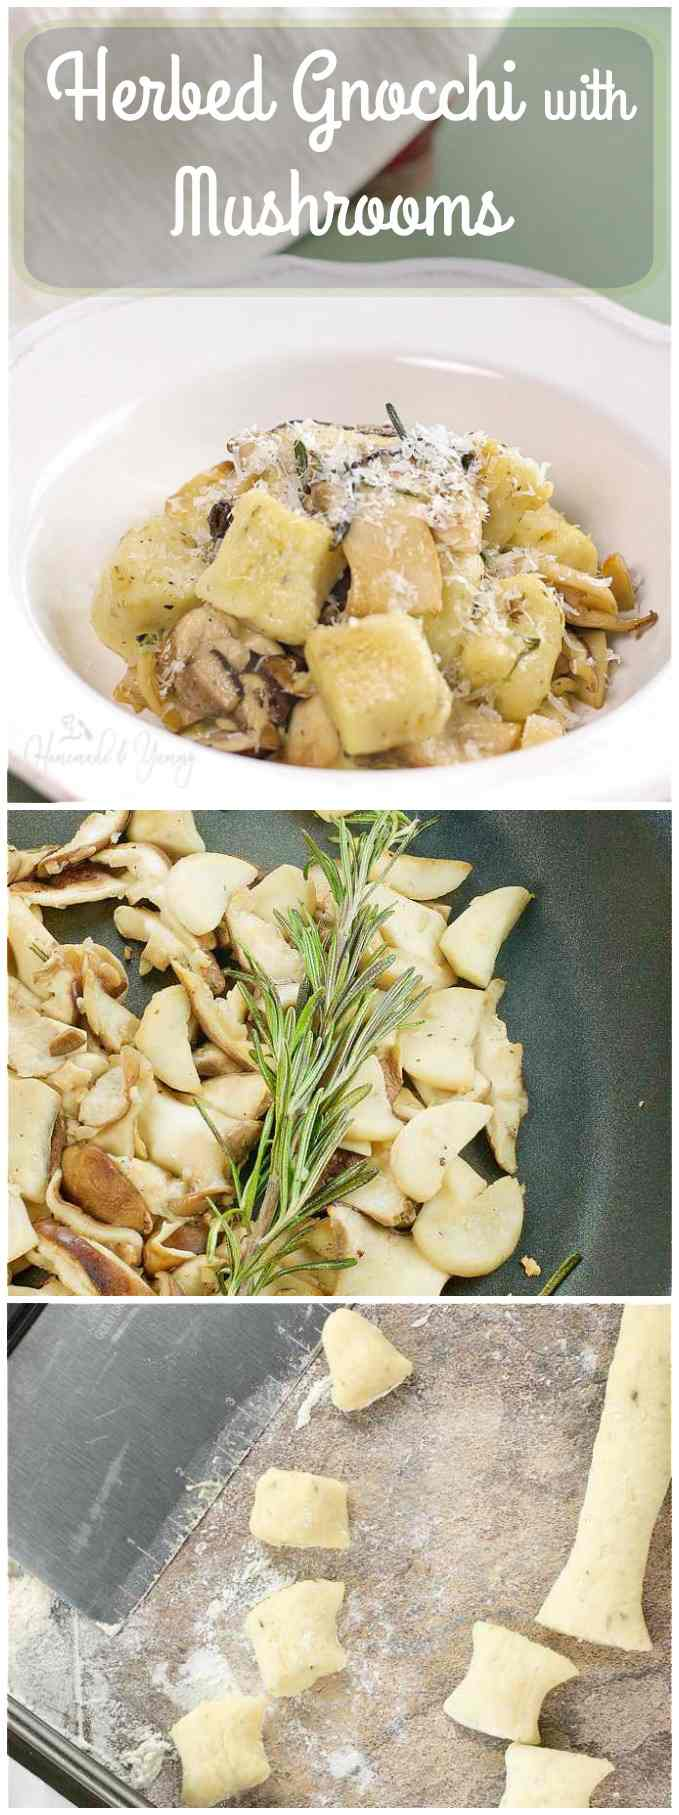 Herbed Gnocchi with Mushrooms long pin image.